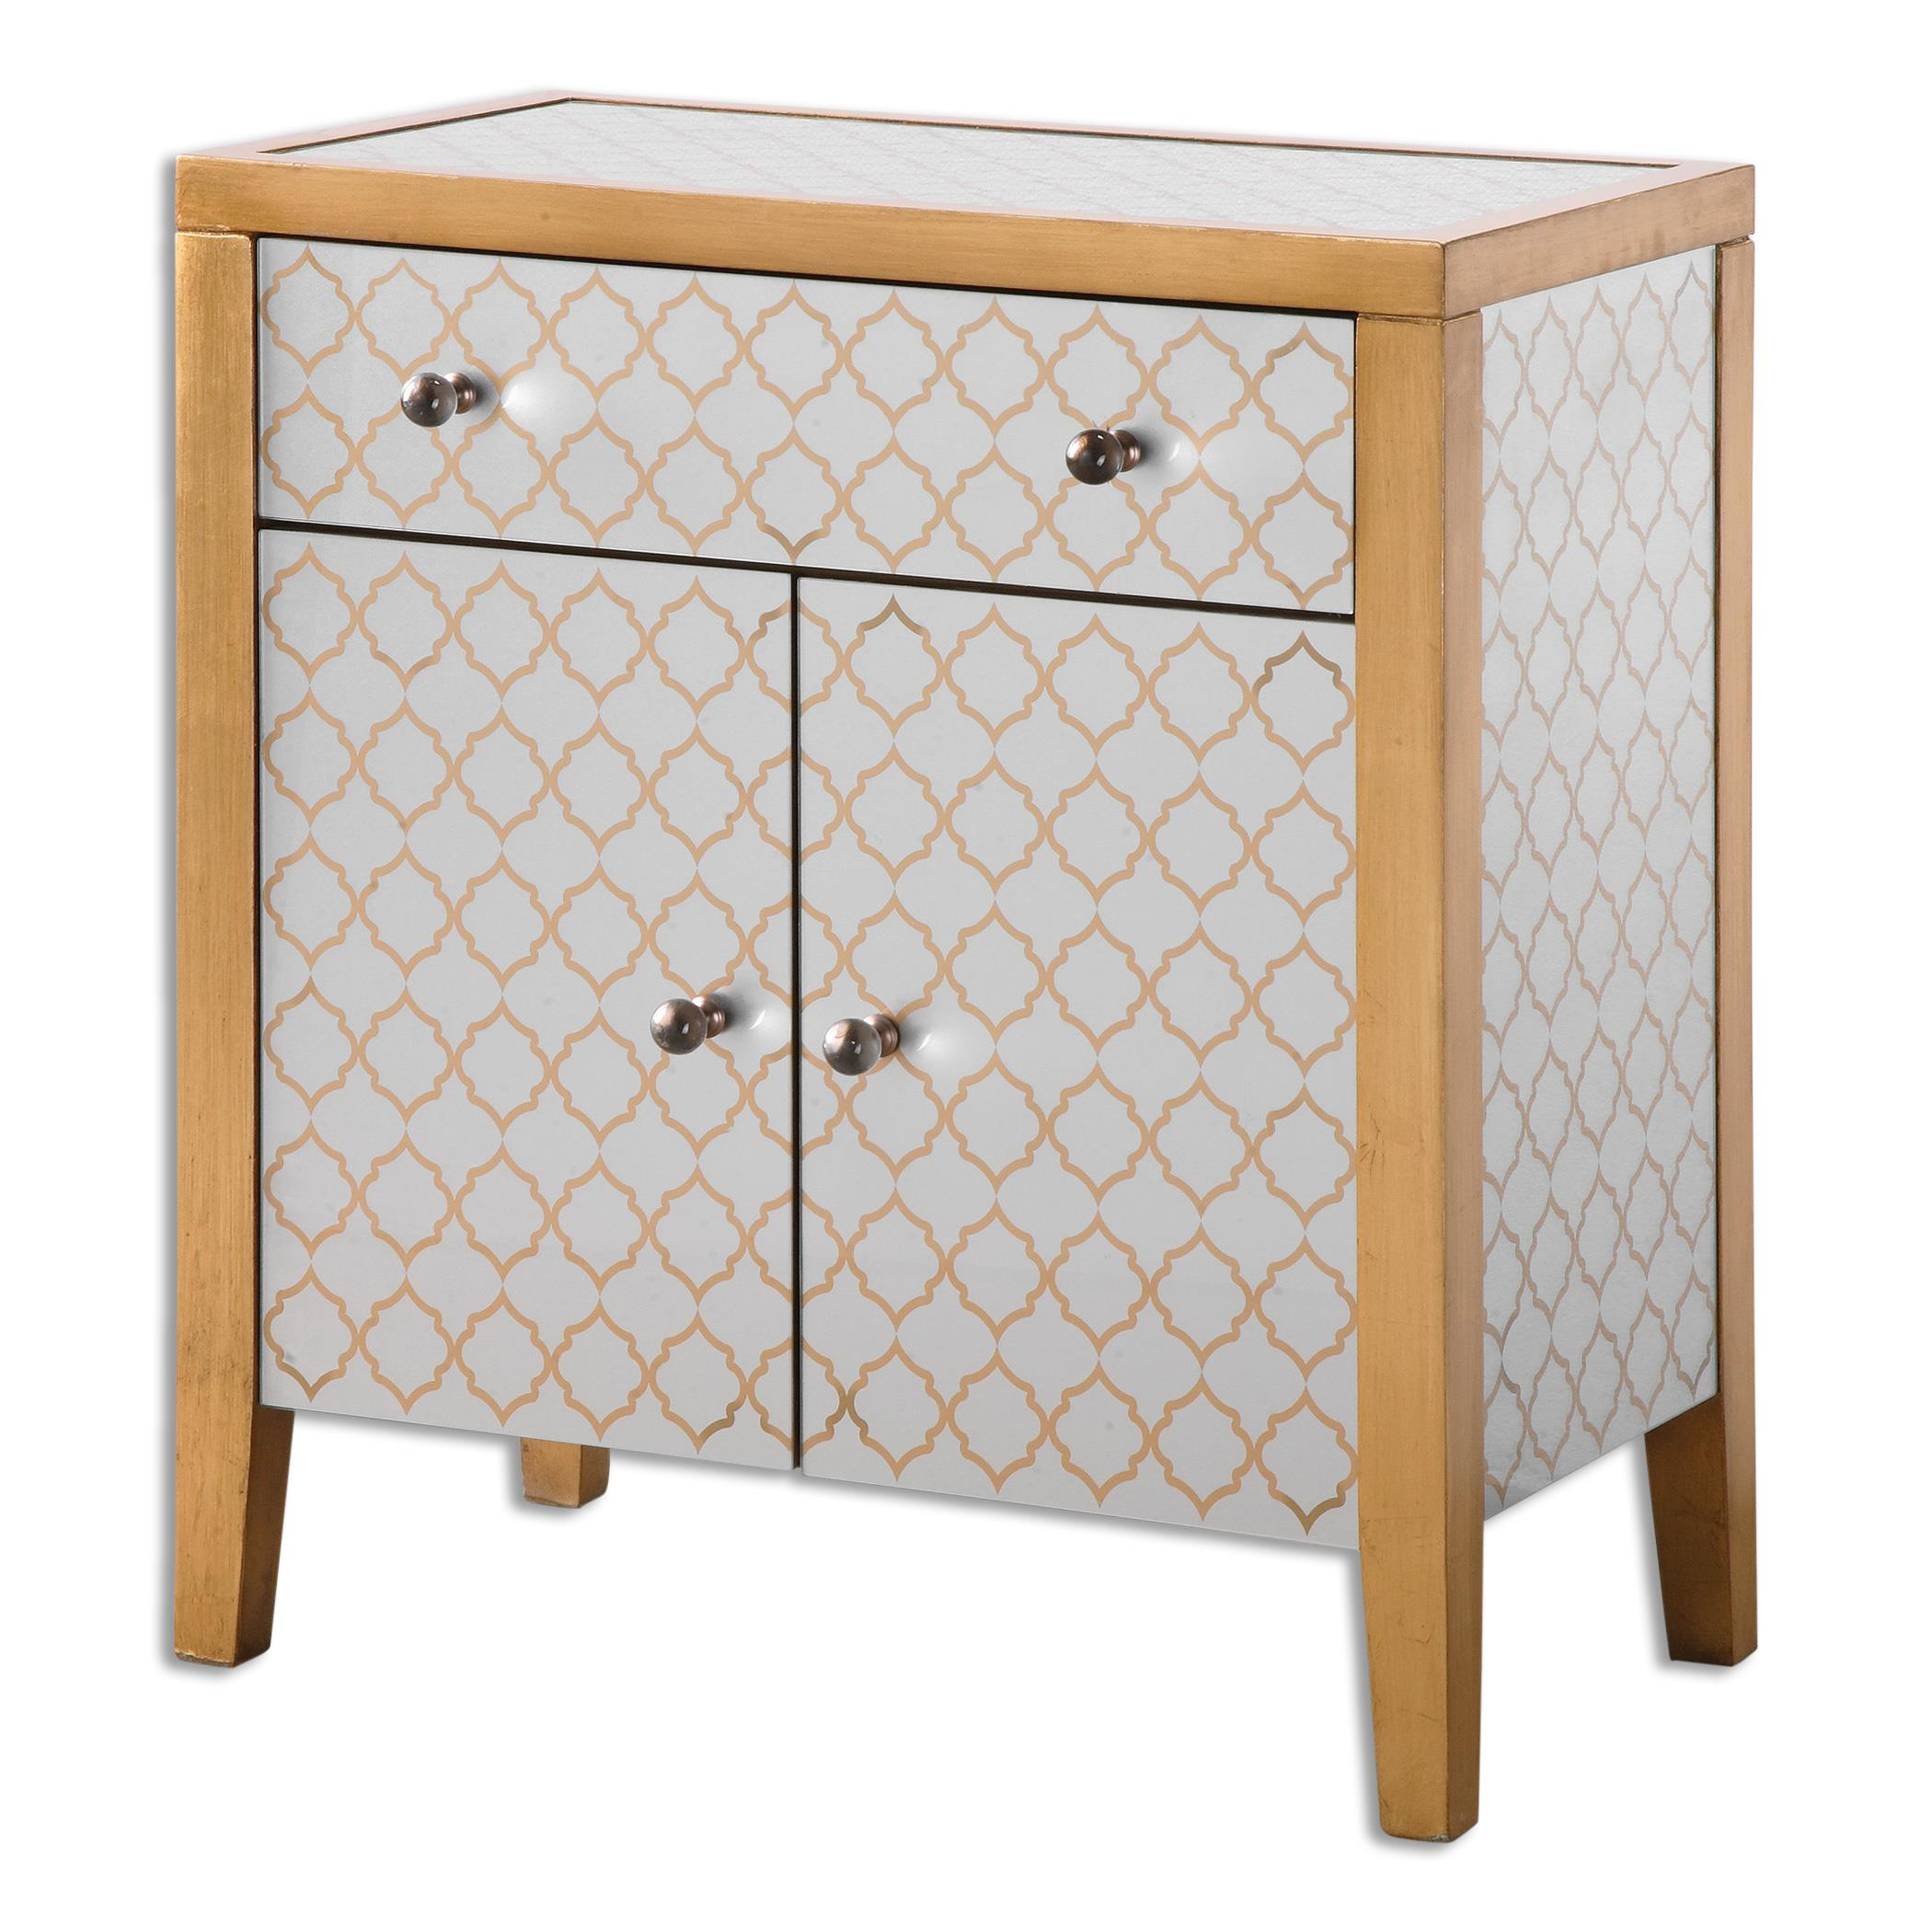 Uttermost Accent Furniture Karolina Mirrored Accent Chest - Item Number: 24499